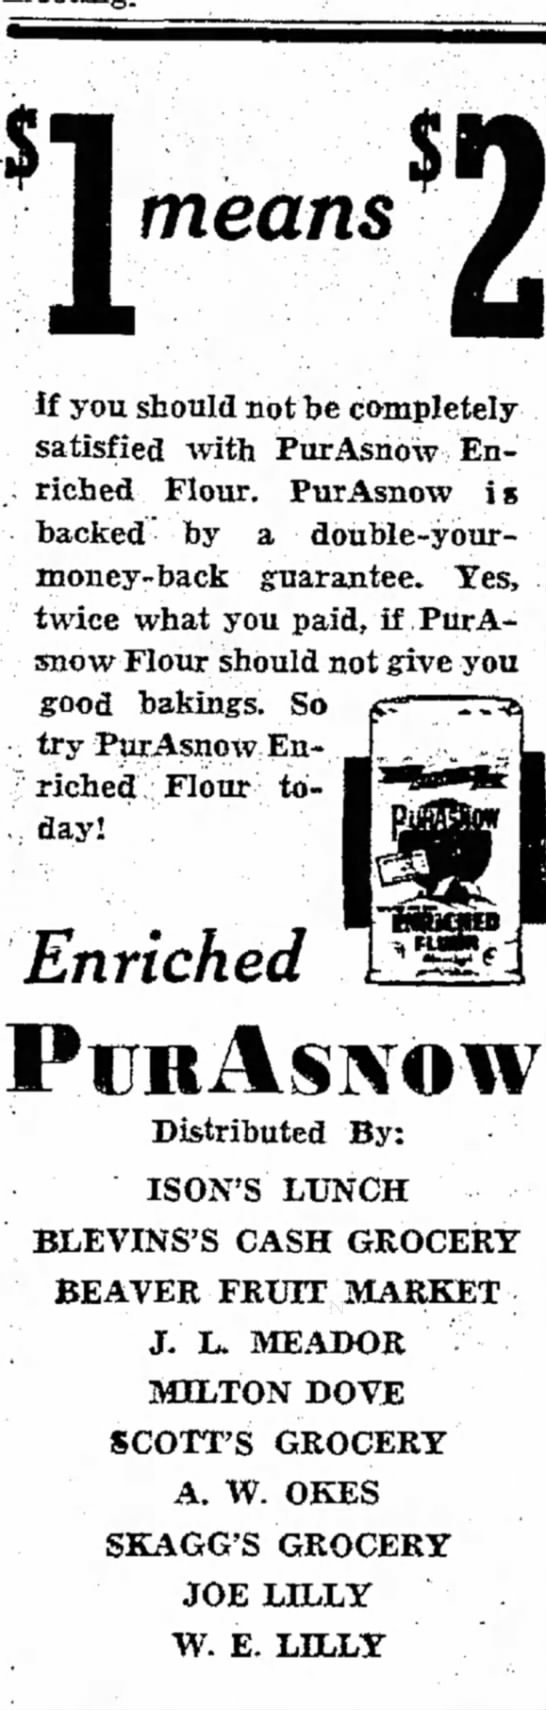 Ison's Lunch - PurAsnow Flour Ad Dec 7 1945